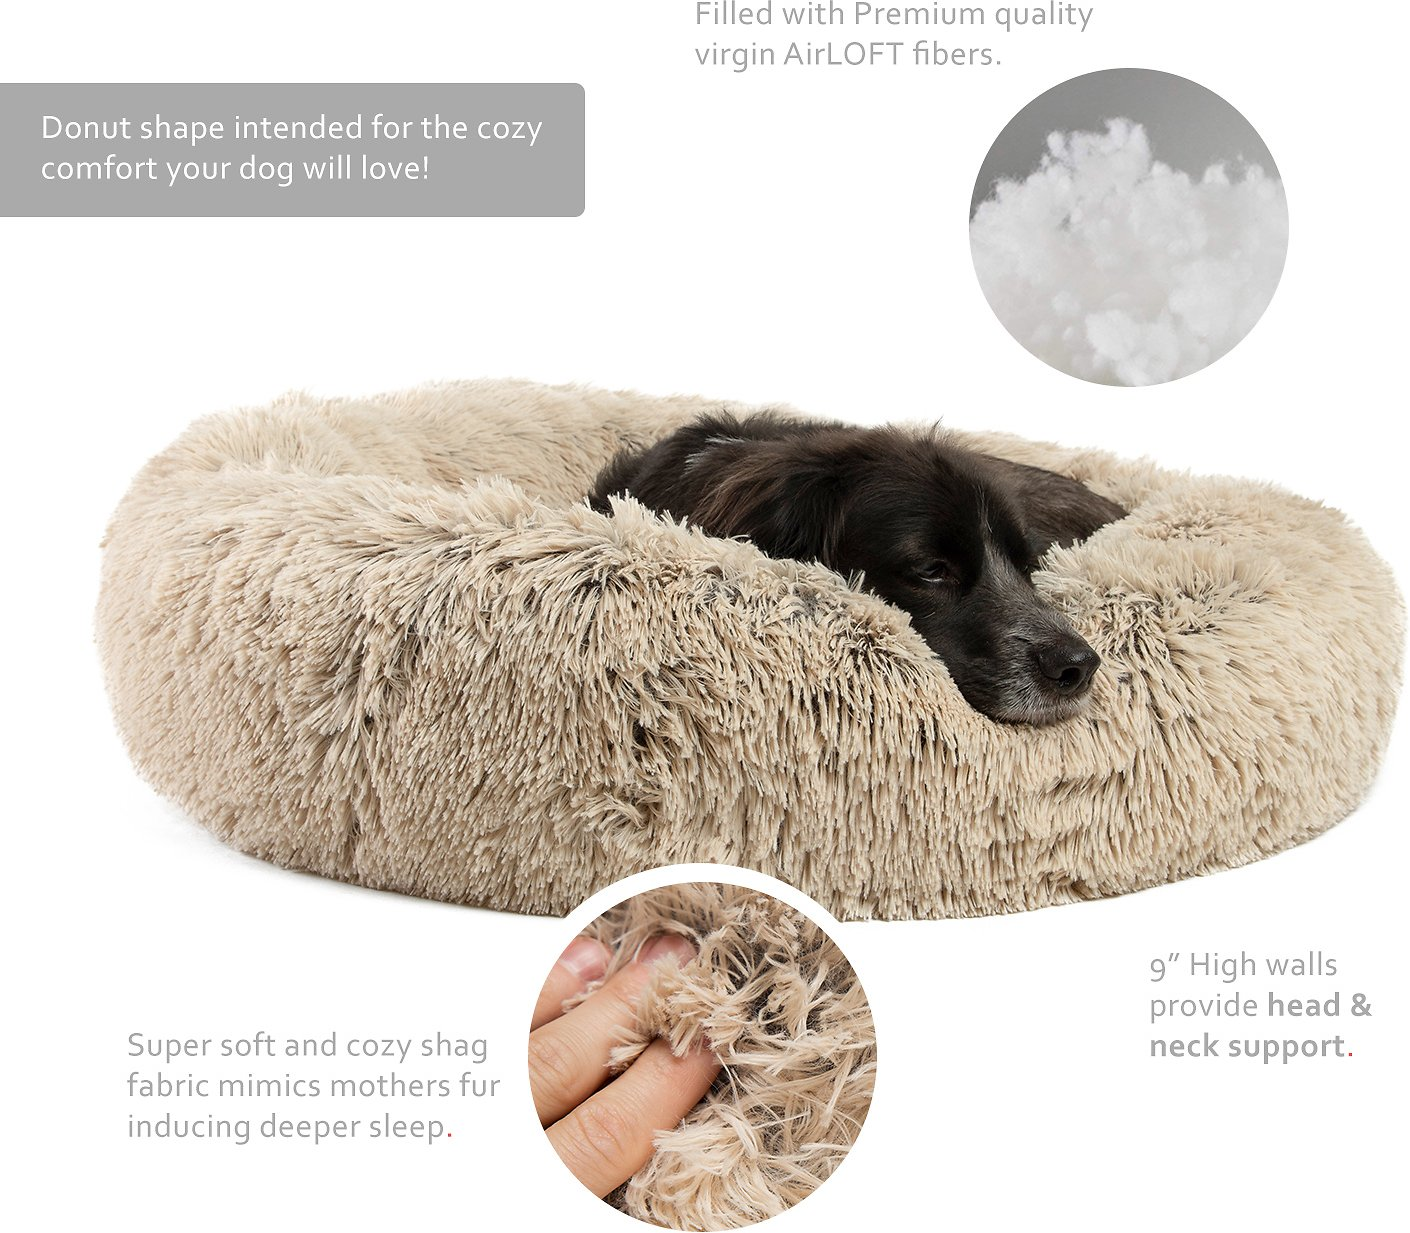 Dog Cat Round Donut Luxury Cushion Bed Self-Warming Cozy Joint-Relief and Improved Sleep-23.7 * 23.7 inches Cream Color Deep Sleeping Luxury Shag Fuax Fur Donut Cuddler Soft Pet Bed